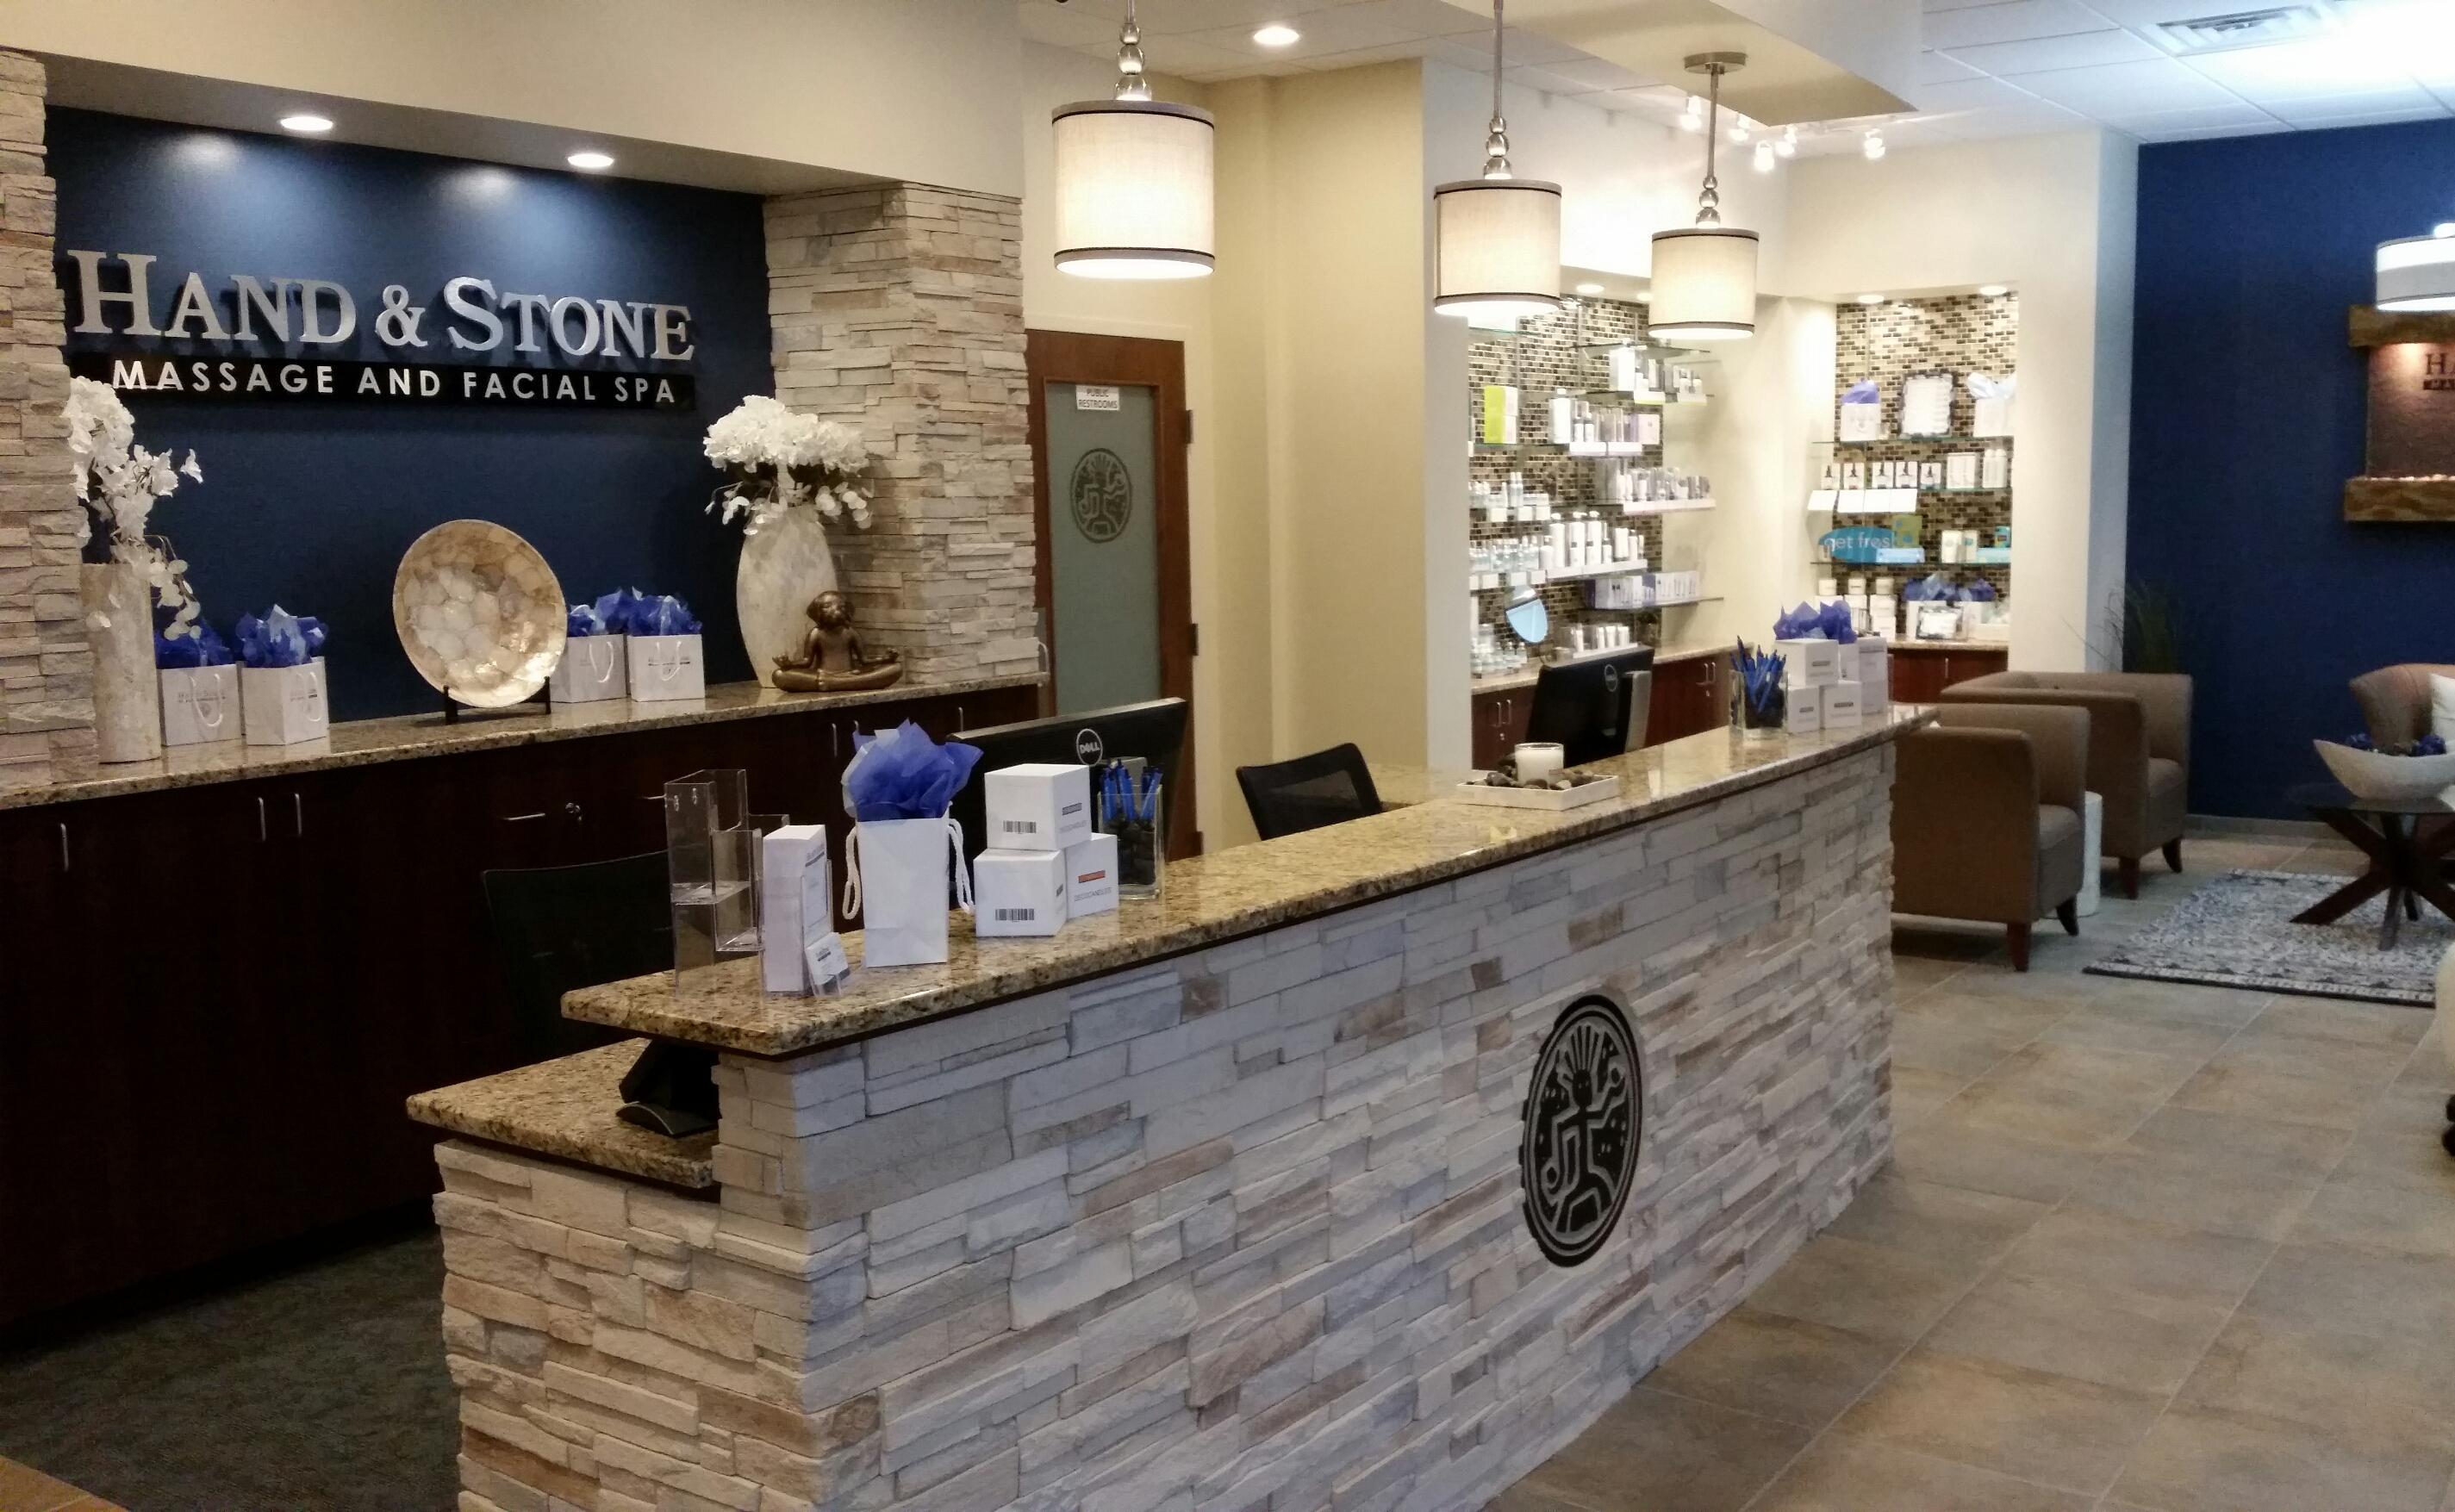 Hand & Stone Massage and Facial Spa Mansfield Texas TX